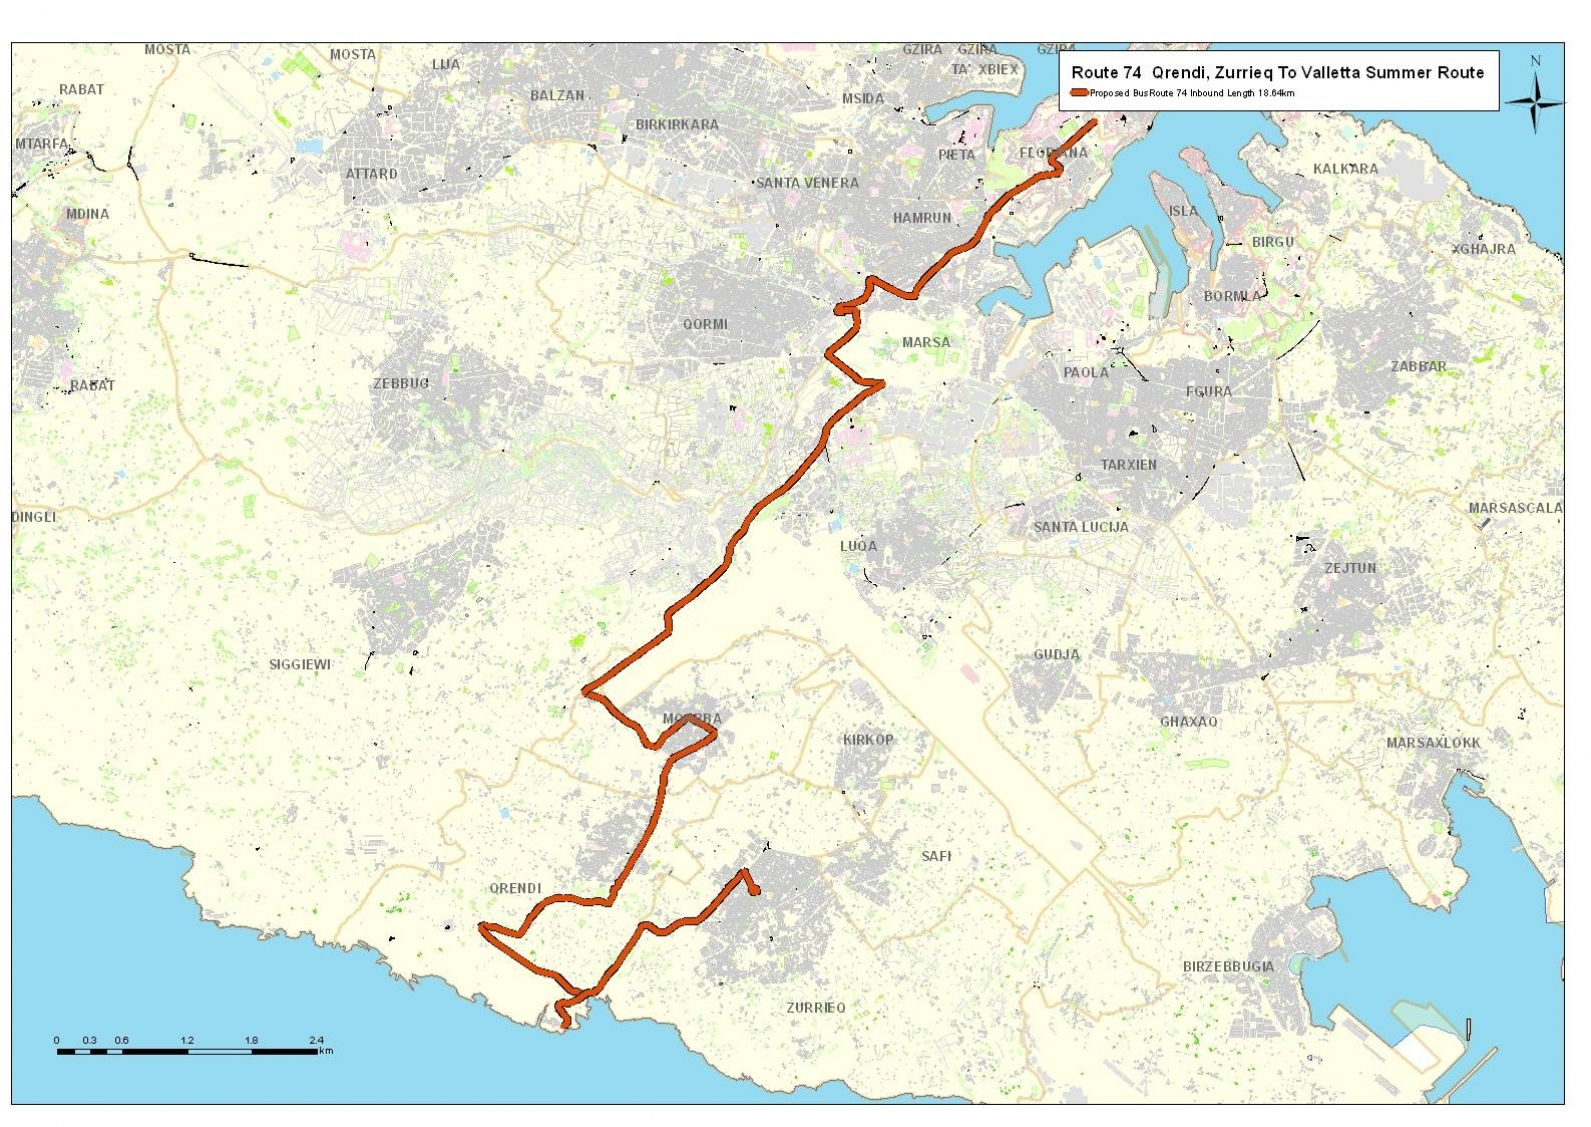 Land-current-network-routes-and-schedules-Summer-routes-4